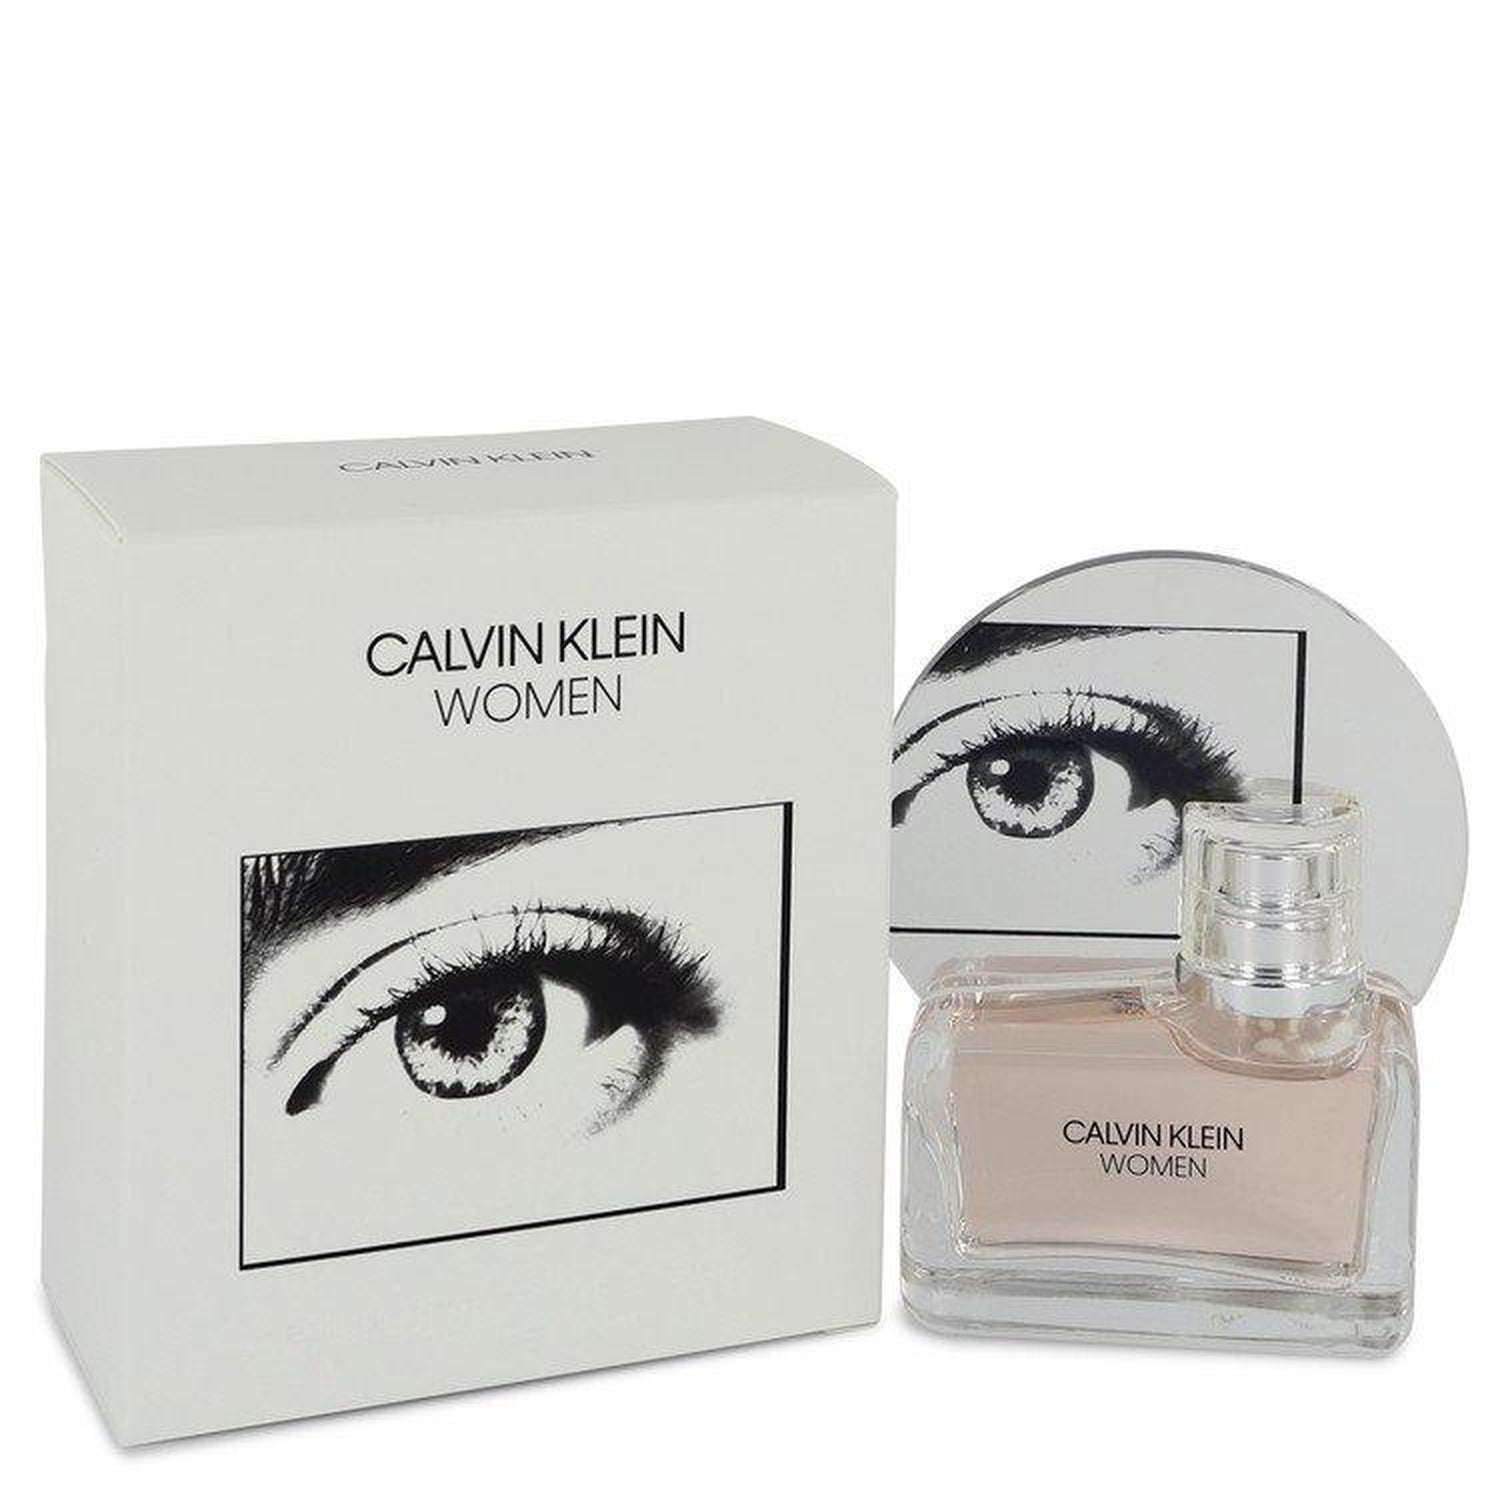 Calvin Klein Woman by Calvin Klein Eau De Parfum Spray 1.7 oz